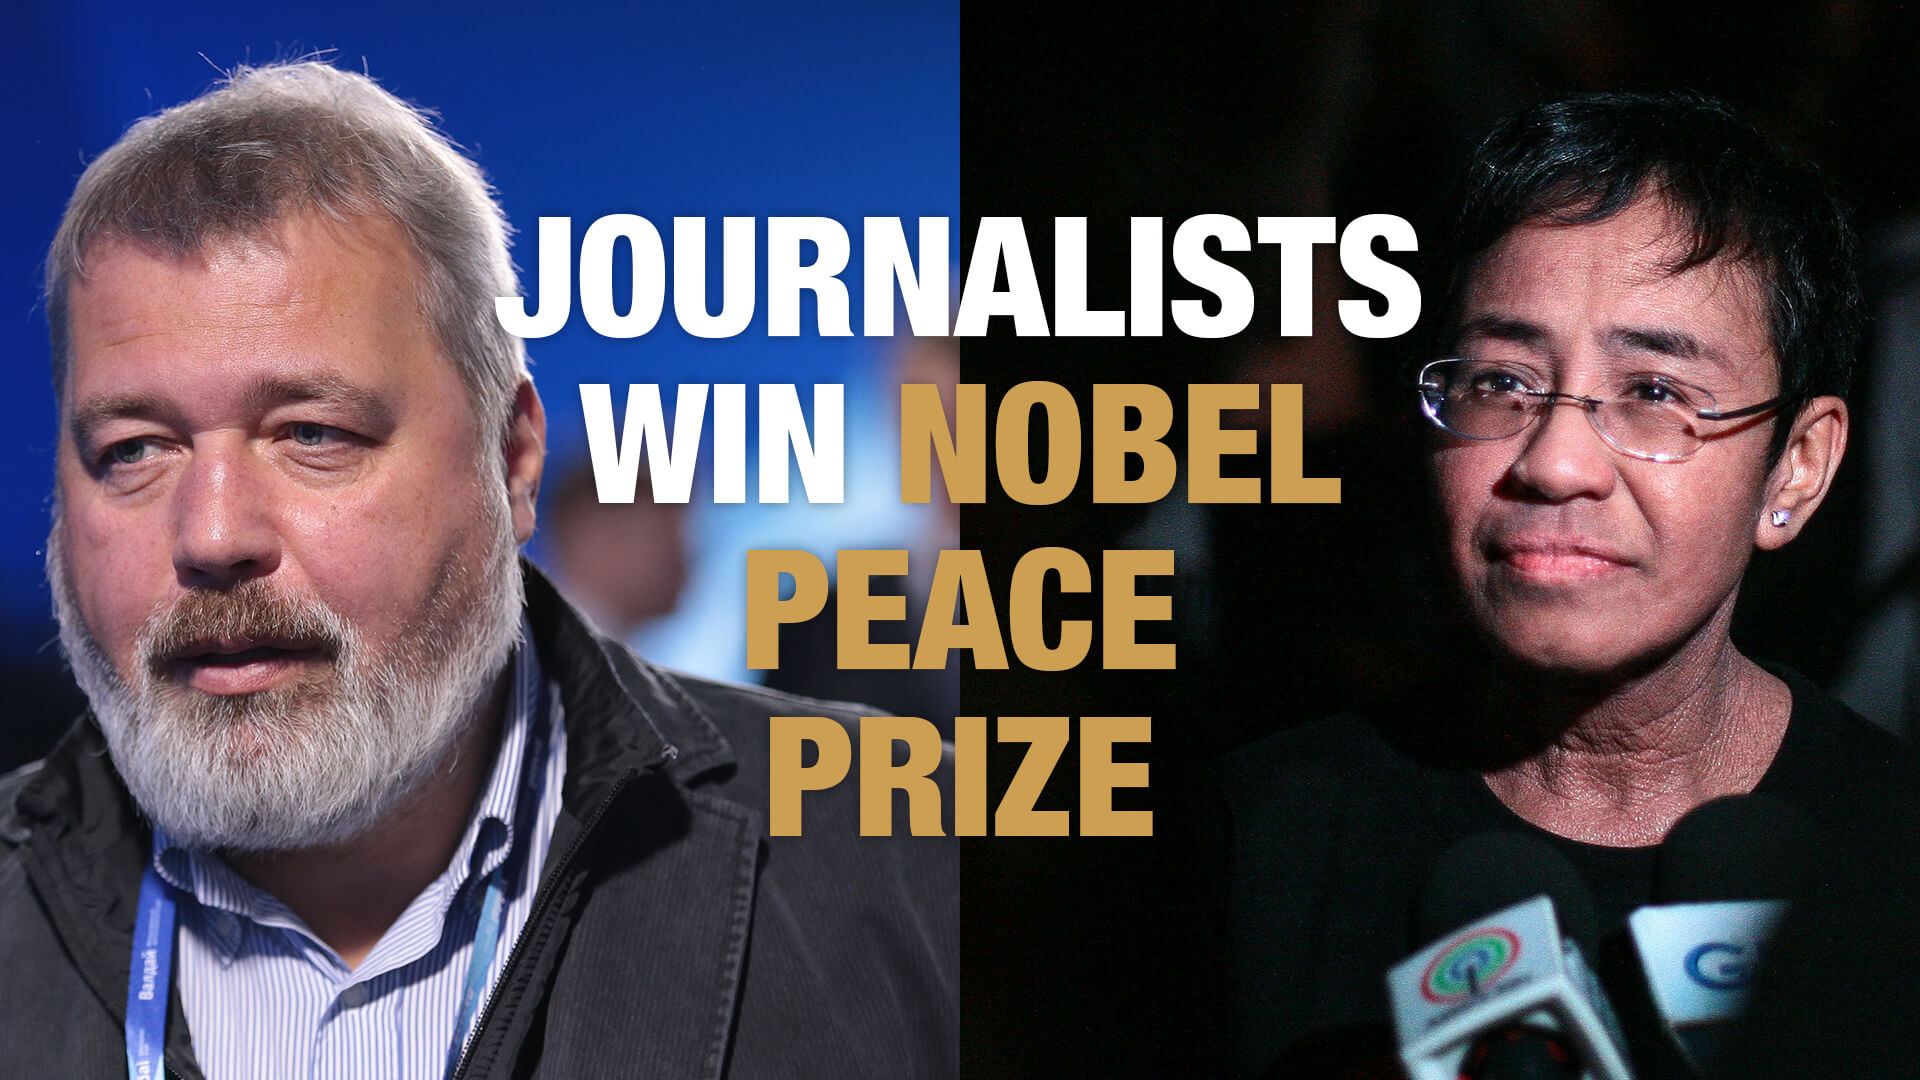 Press freedom heroes awarded the Nobel Peace Prize